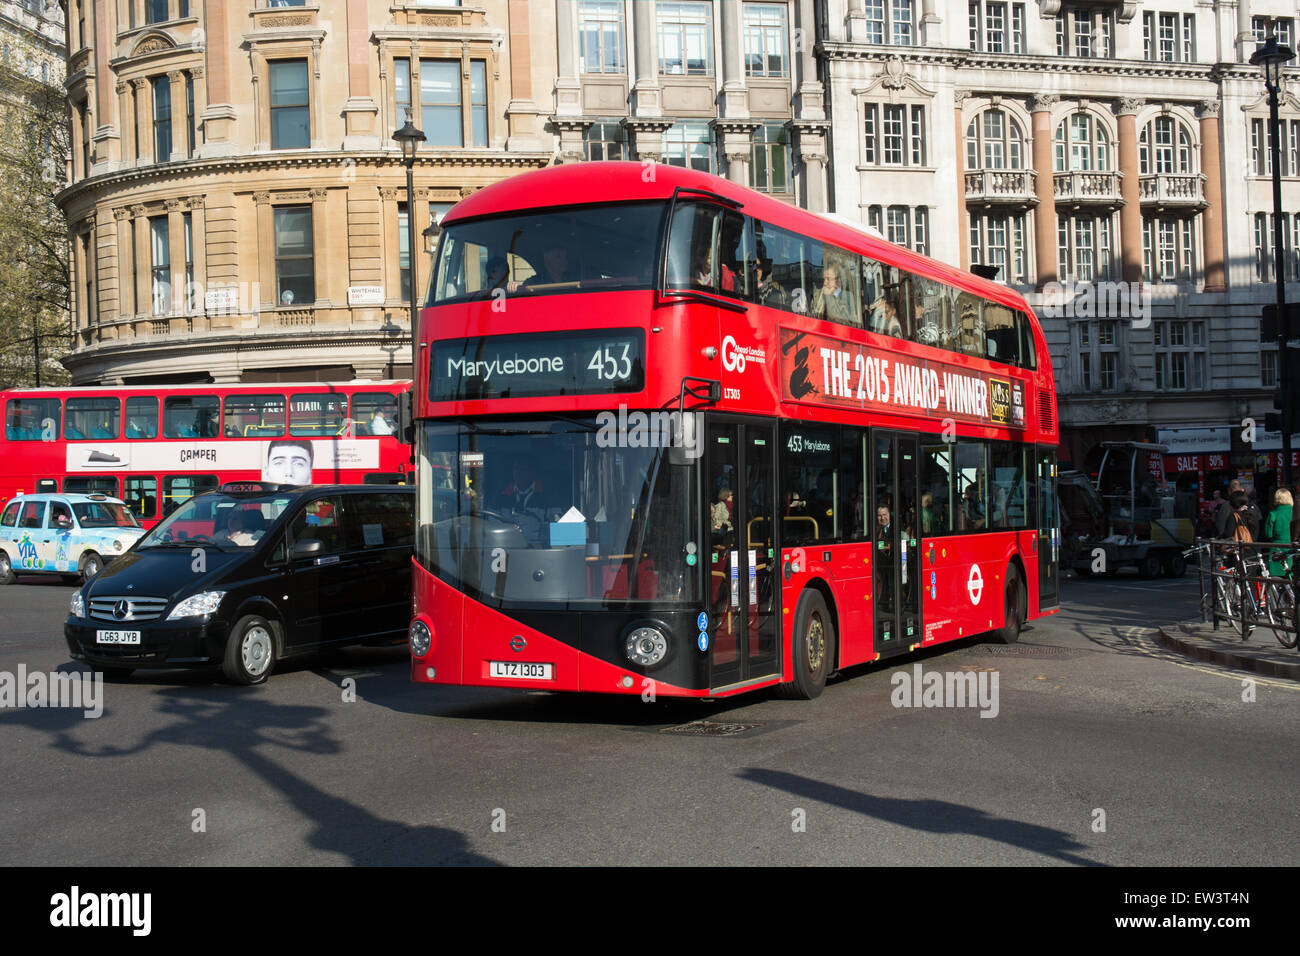 A new bus for London Routemaster passes through Charing Cross on route 453 to Marylebone - Stock Image